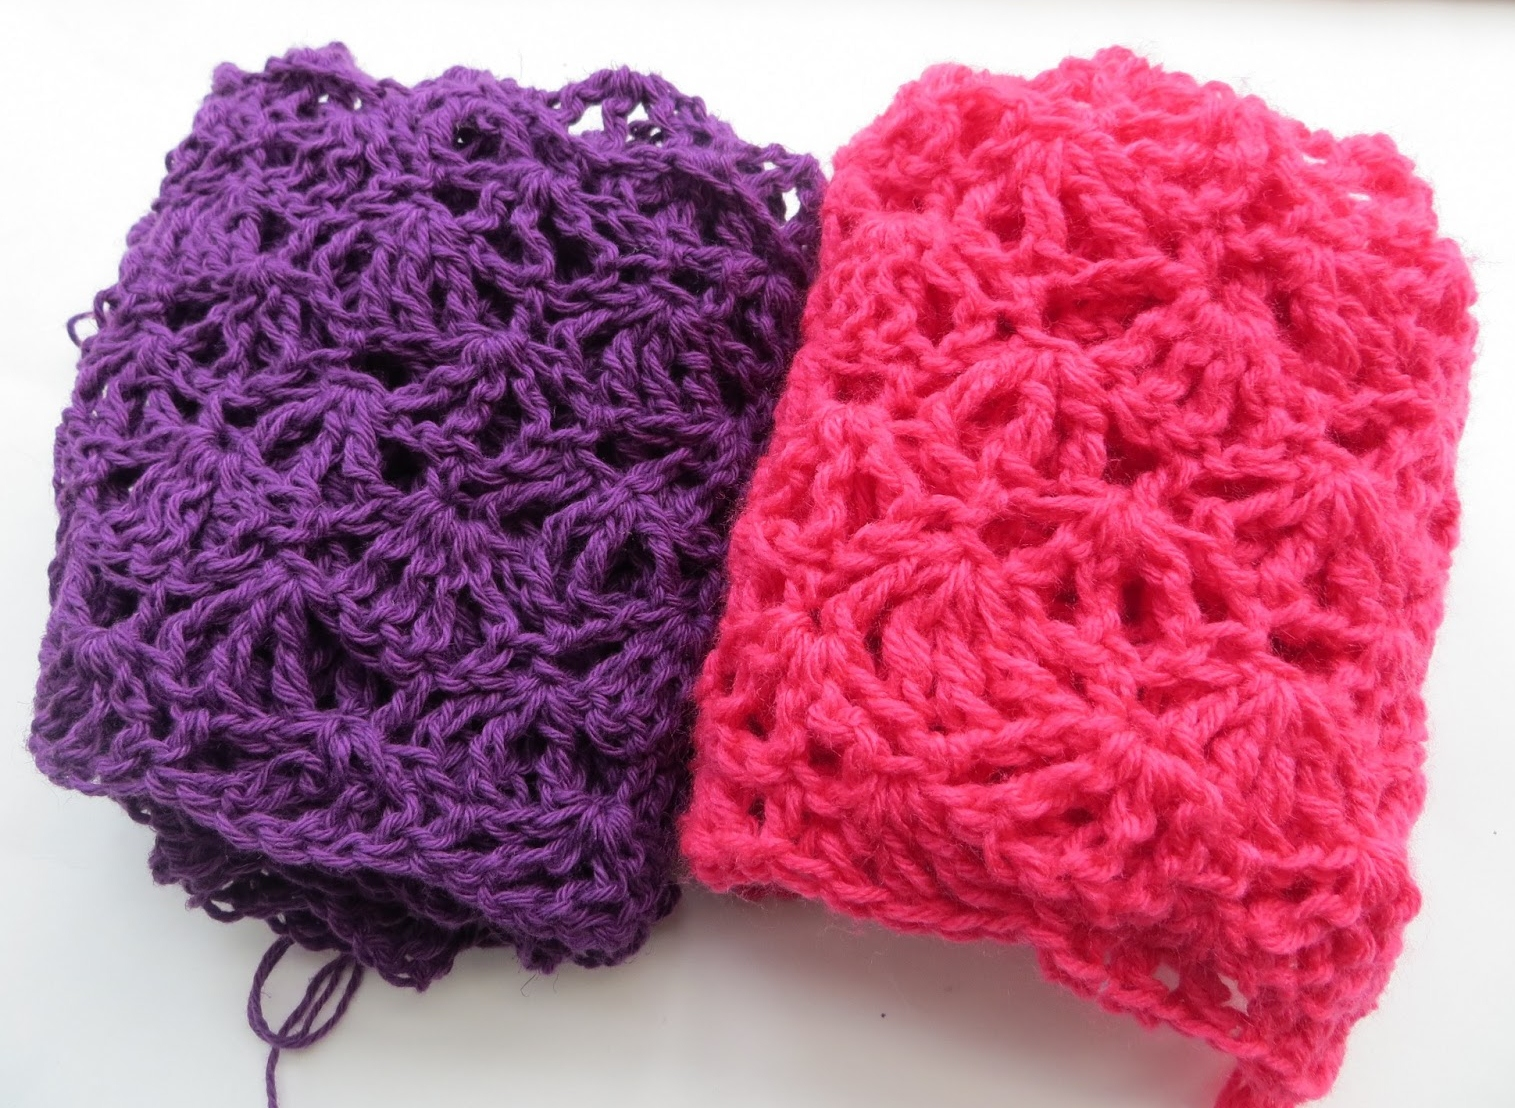 Crochet Patterns Dk Weight Yarn : For the Love of Crochet Along: Alana Lacy Scarf, Free Crochet Pattern